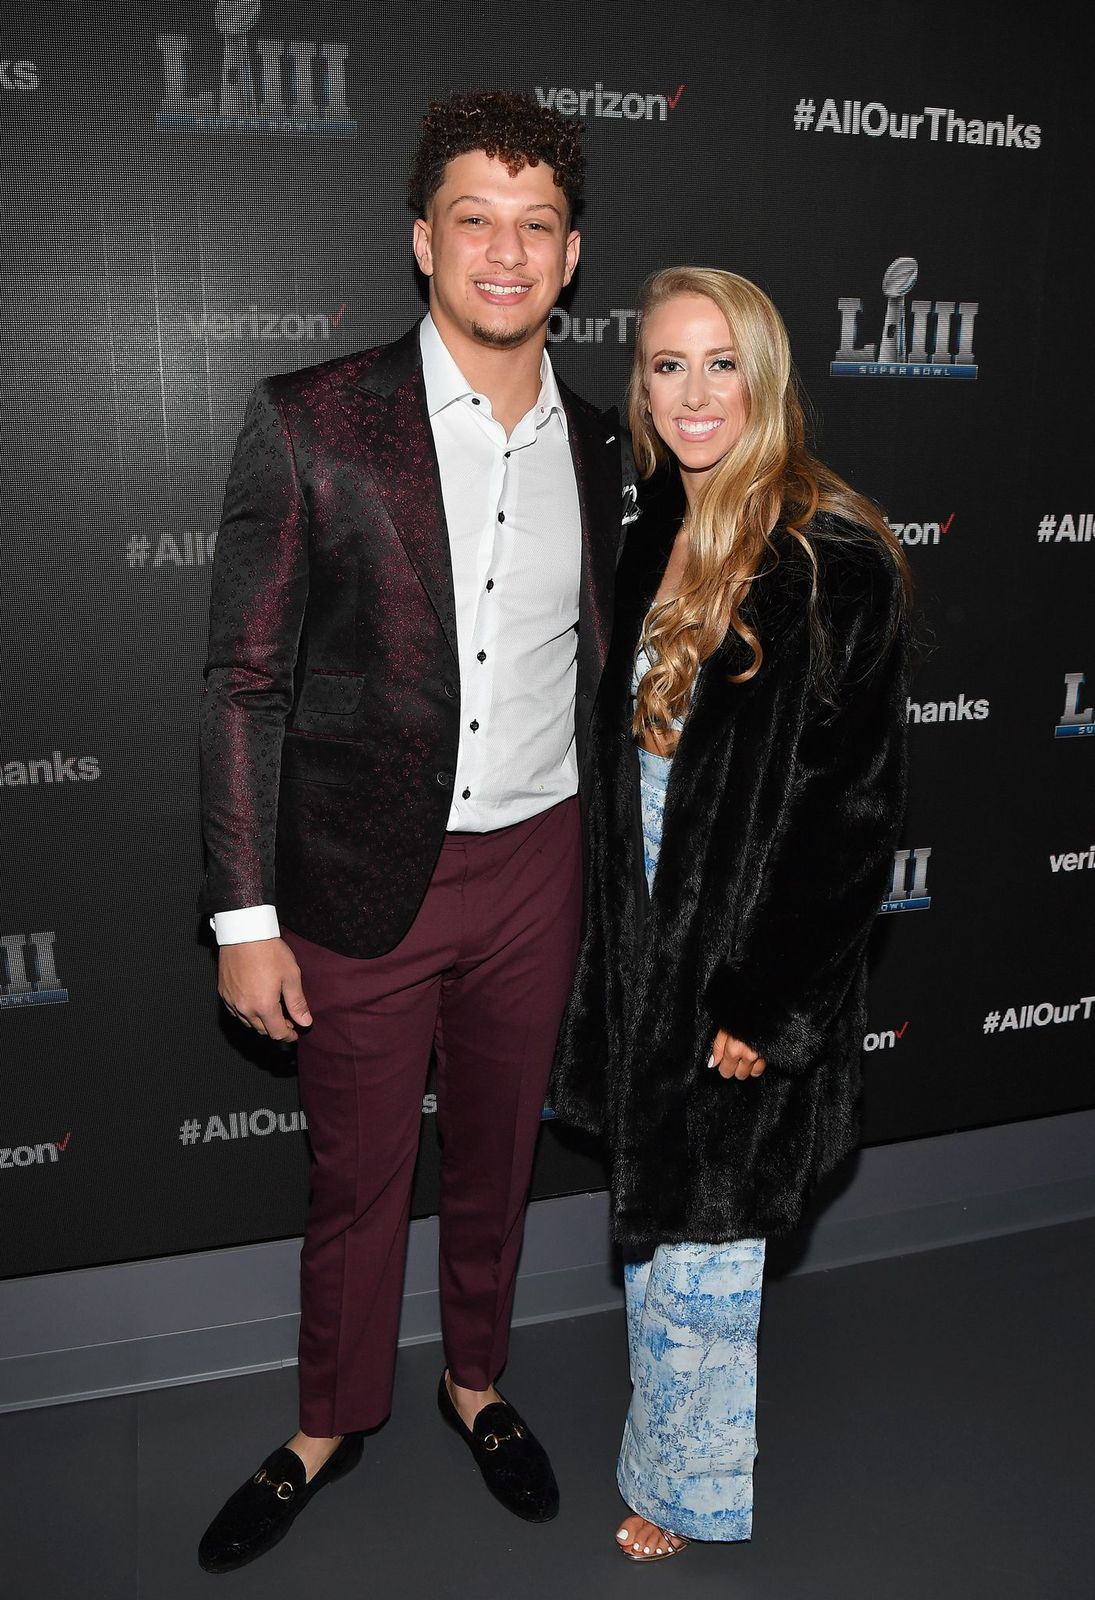 """Patrick Mahomes II and Brittany Matthews atthe world premiere event for """"The Team That Wouldn't Be Here"""" documentaryon January 31, 2019, in Atlanta, Georgia 